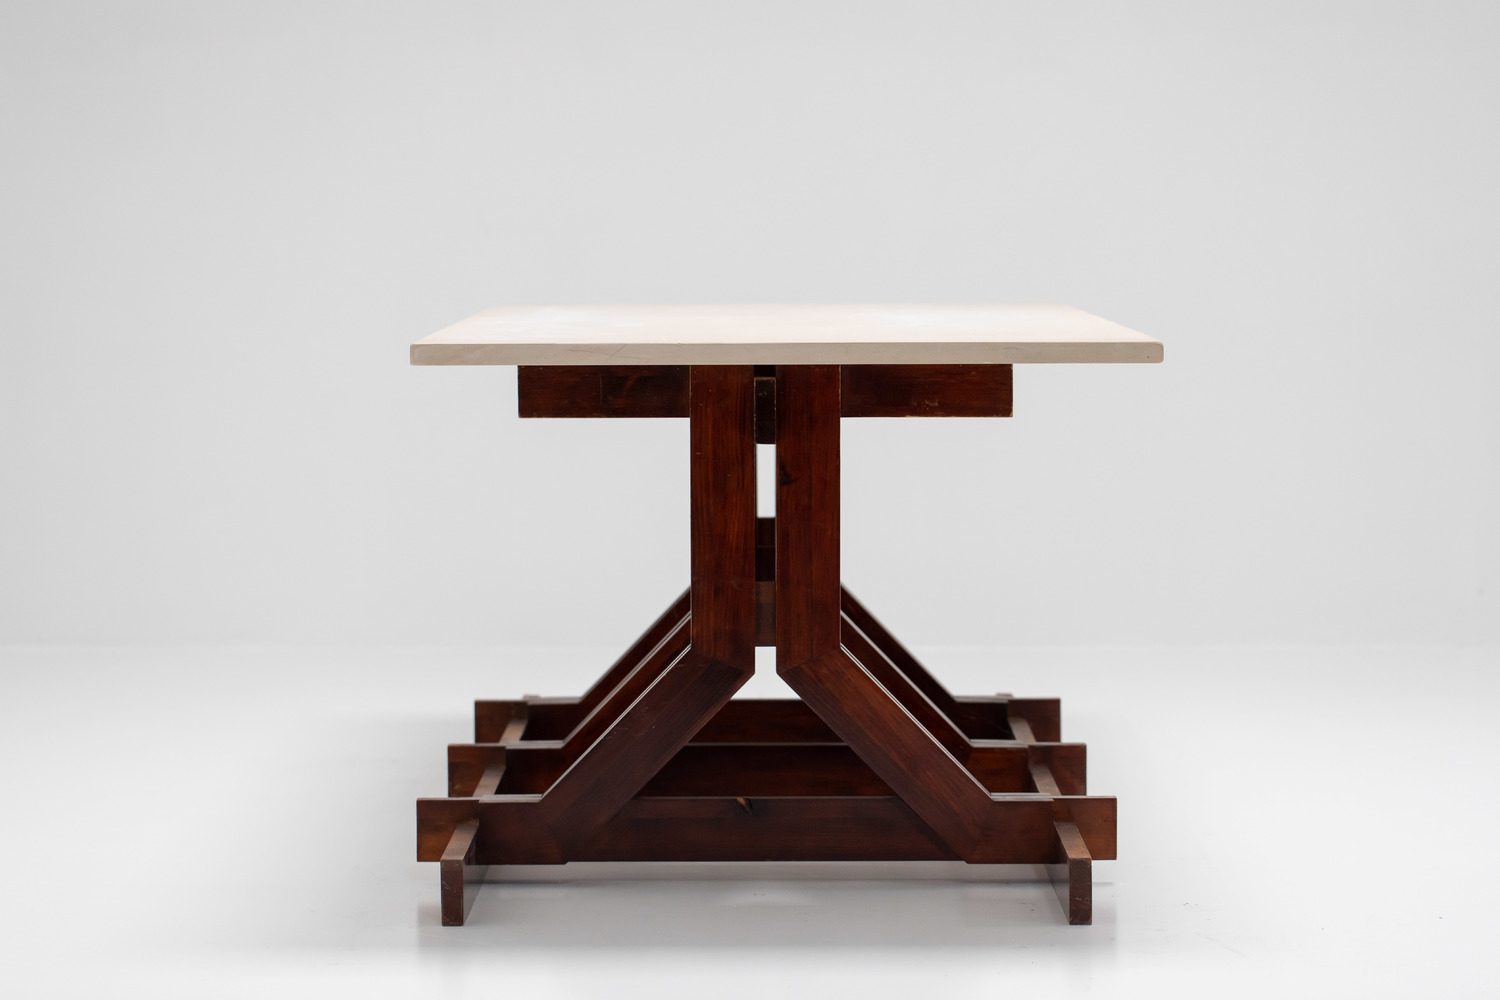 Spanish Rationalist table